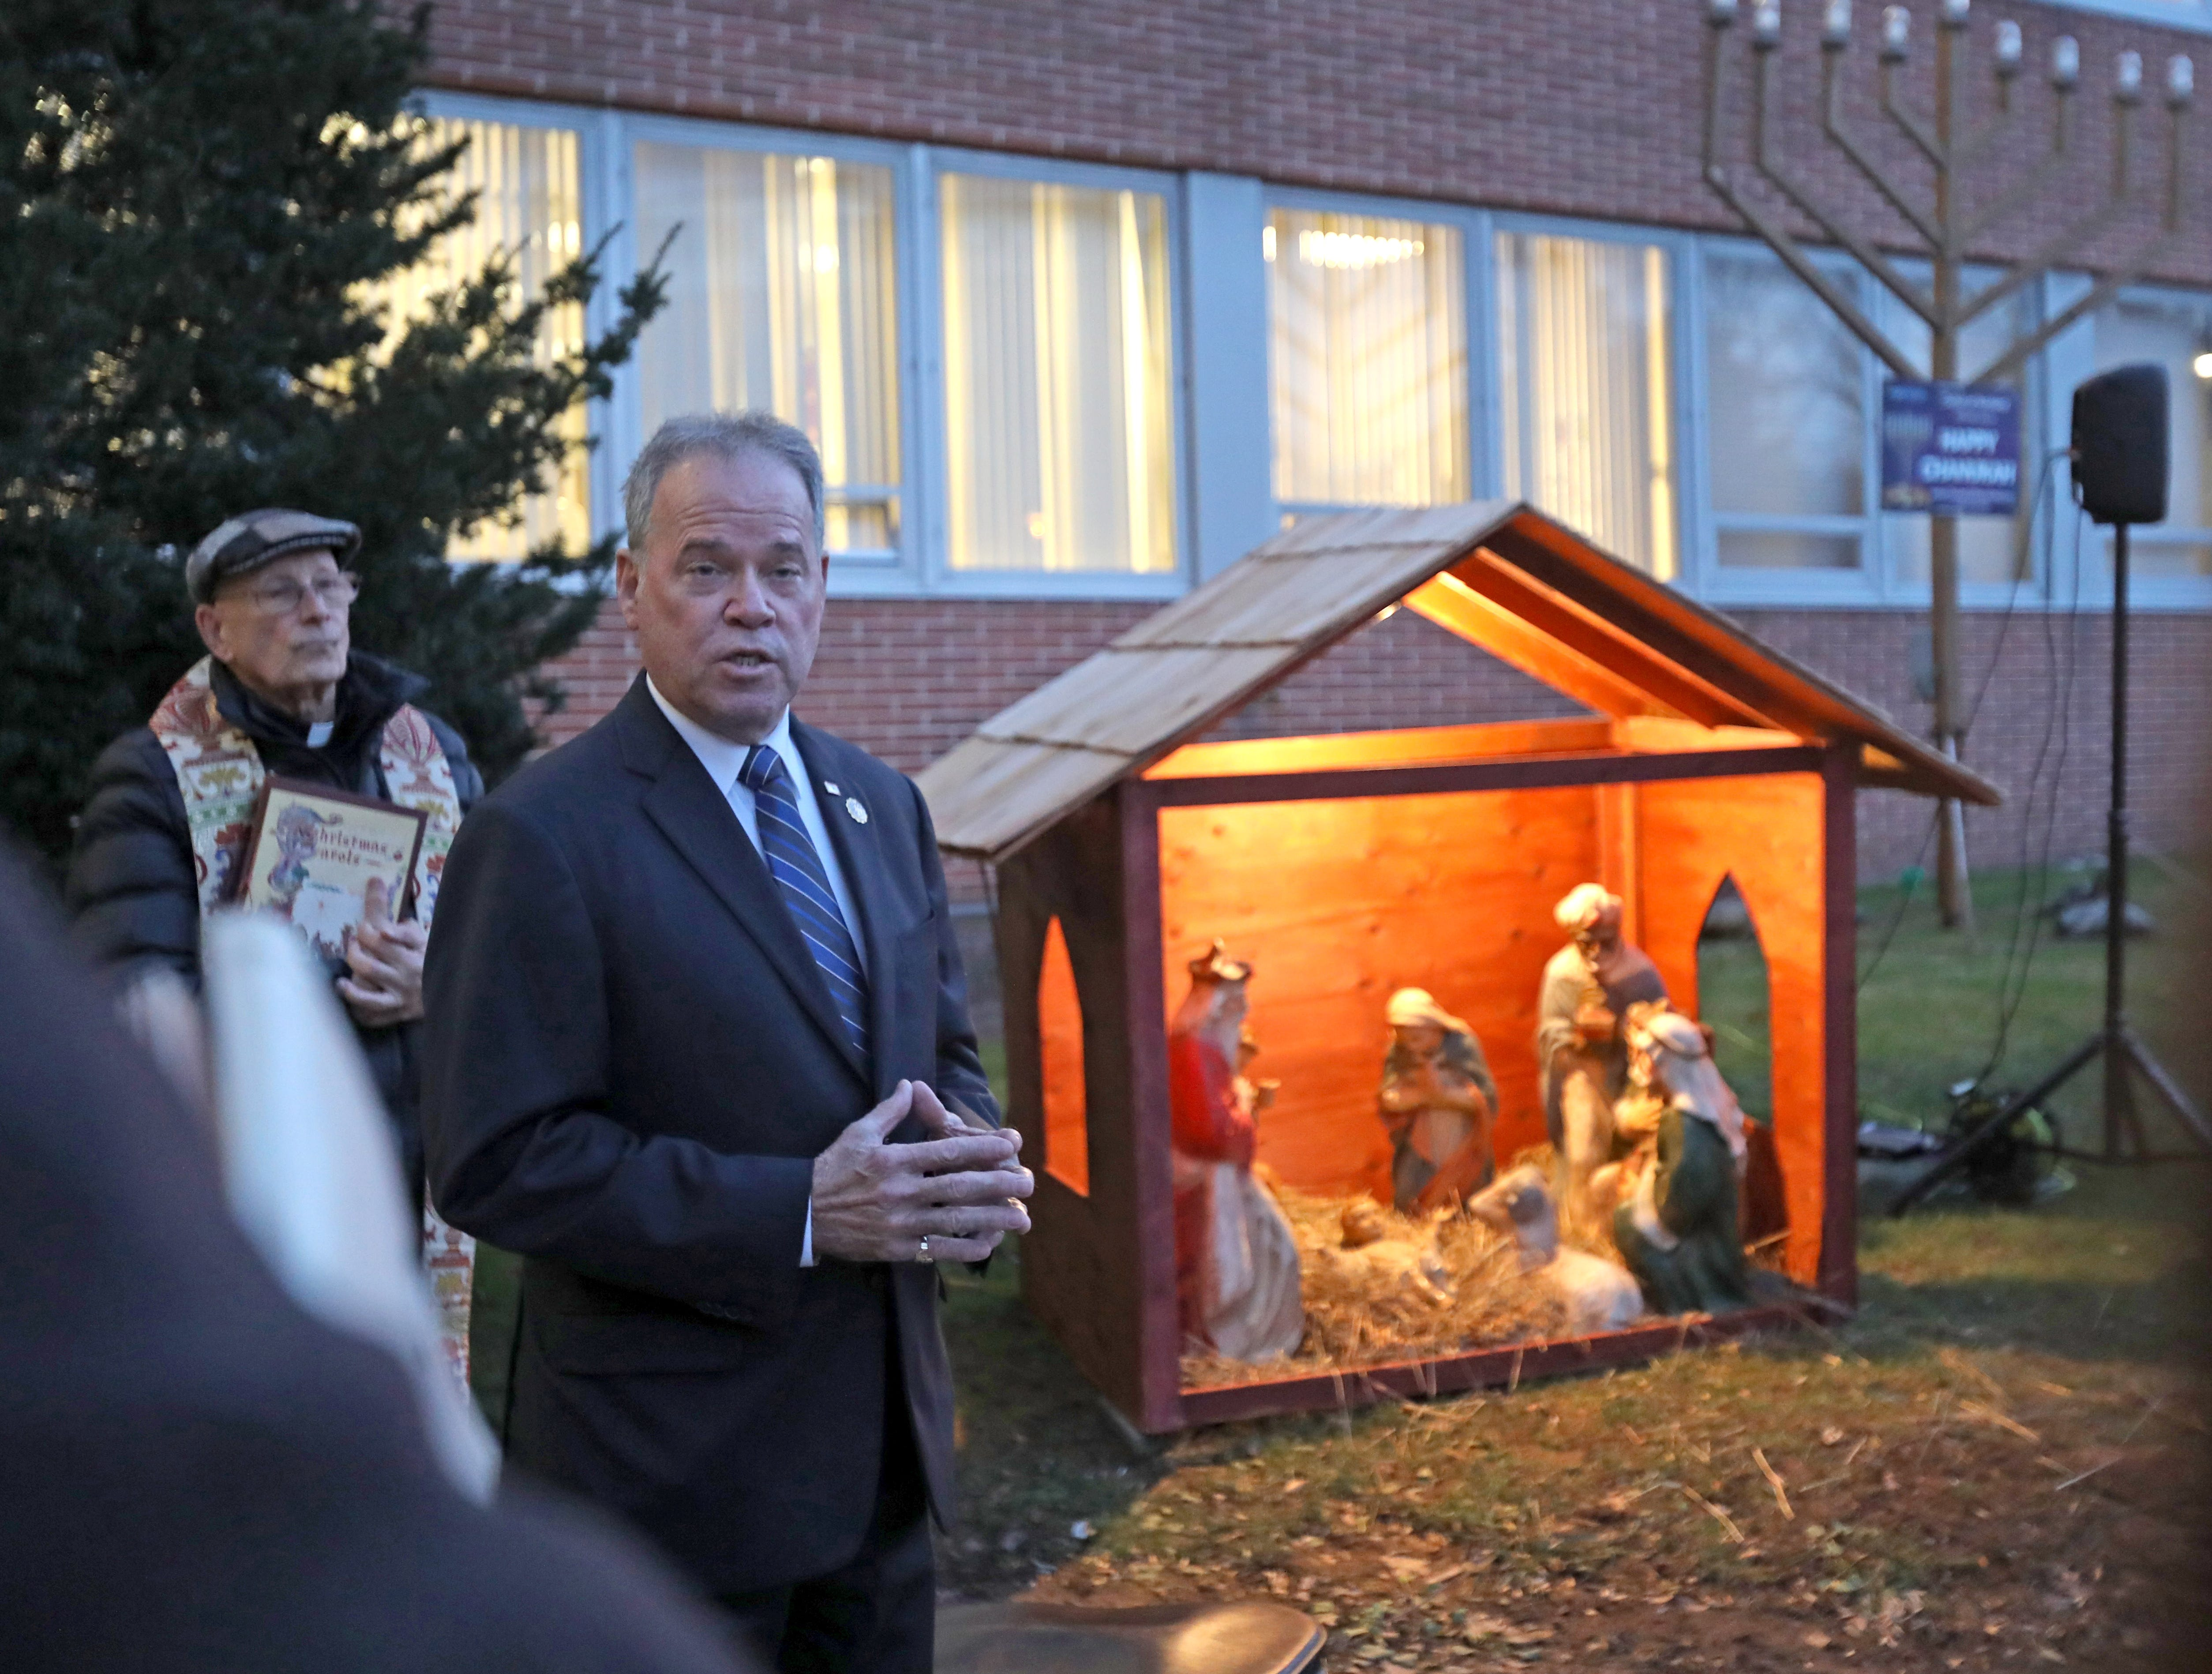 Rockland County Executive Ed Day speaks to local residents attending the The Blessing of the Nativity Creche in front of the Rockland County Office Building in New City Dec. 3, 2018.